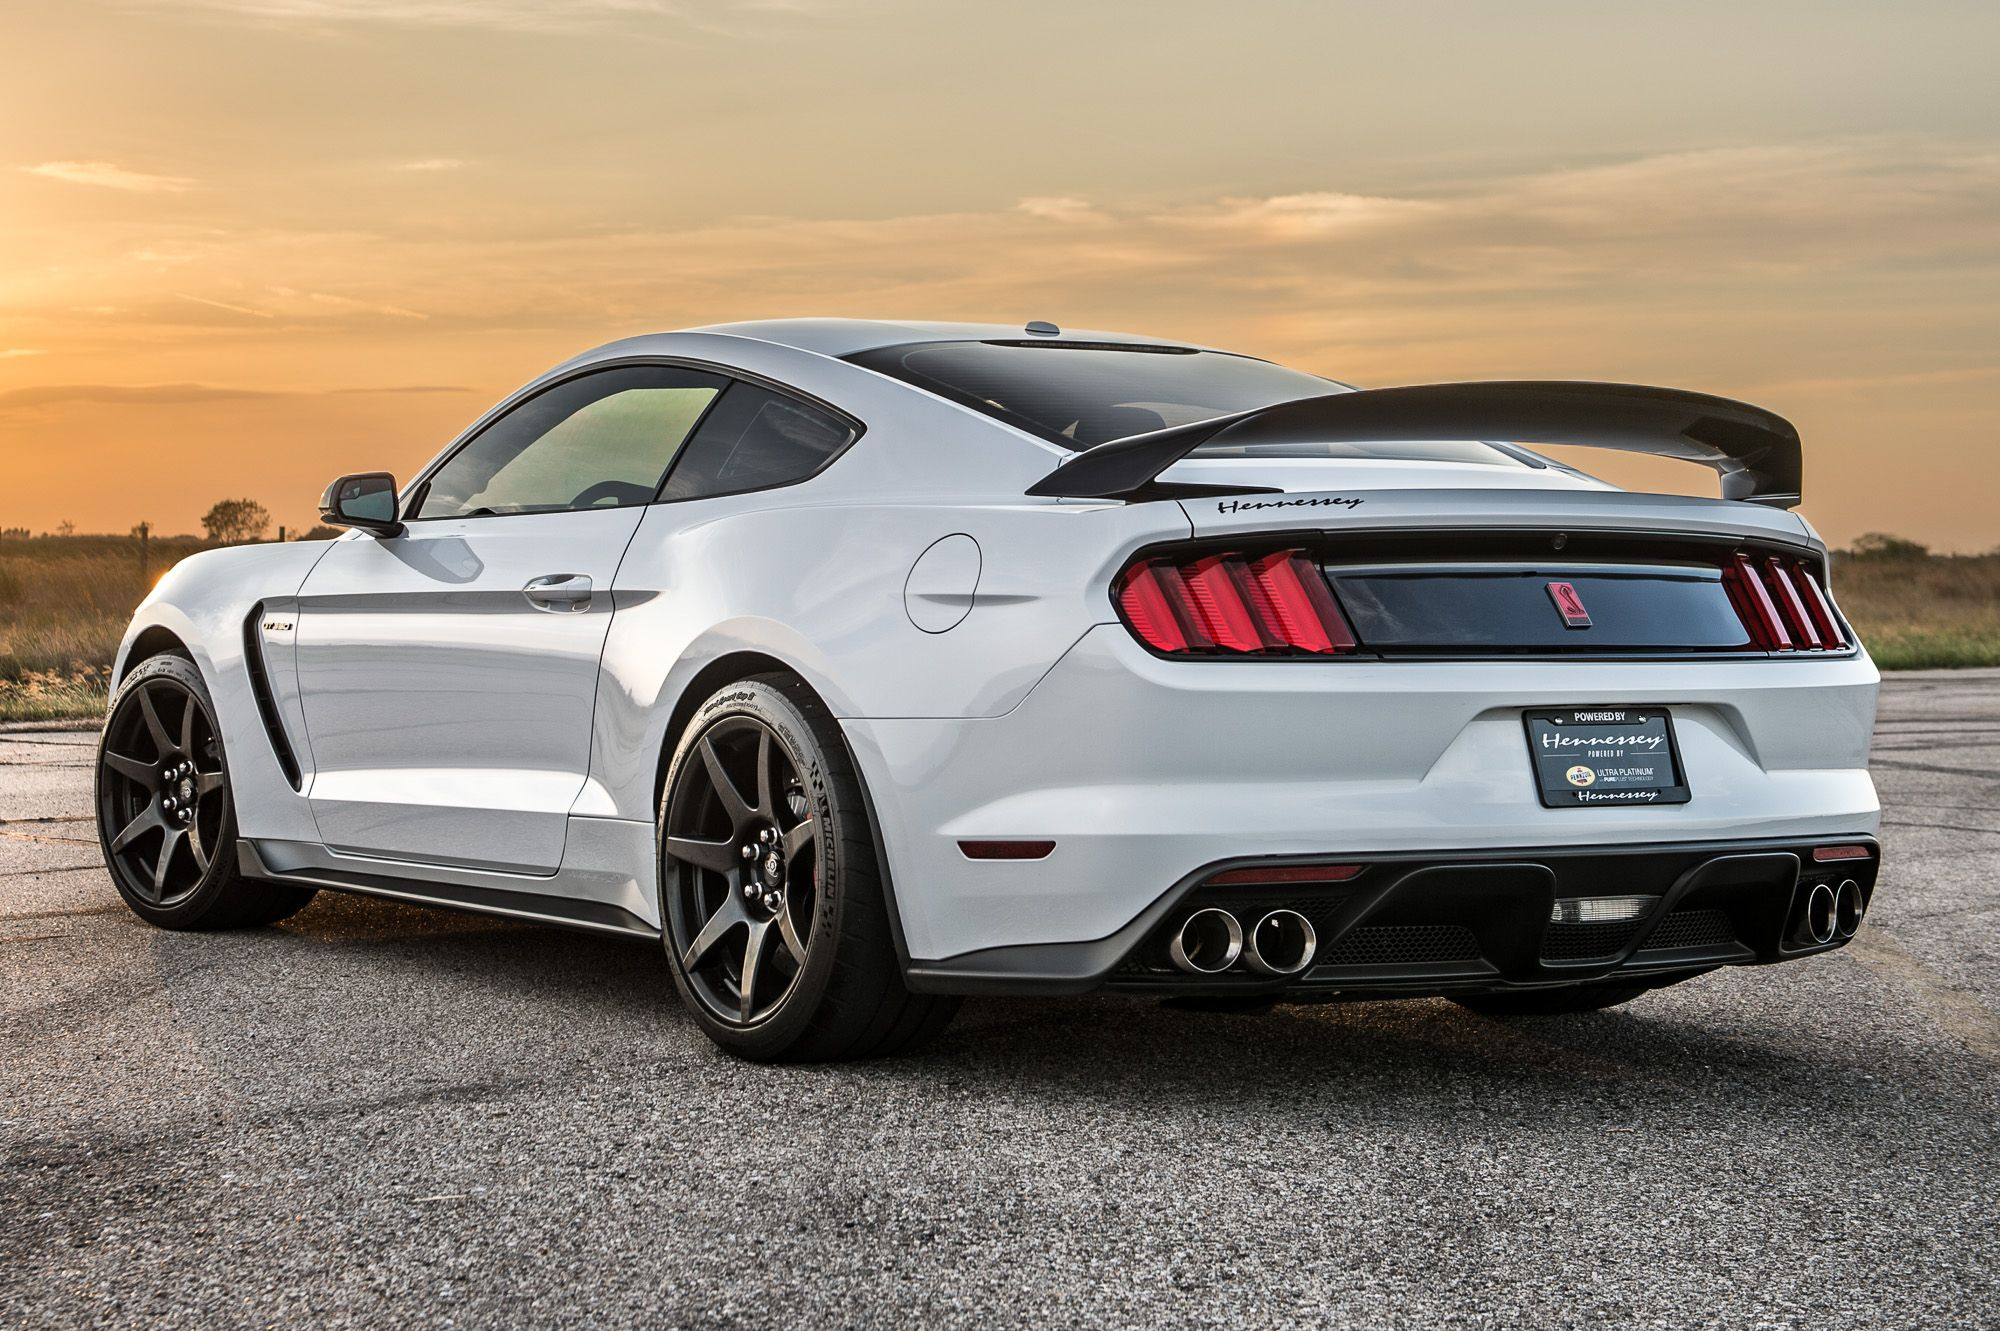 Shelby Gt350 And Gt350r Mustang Coming Back In 2018 Releasing Dates For The Ford Mustangs